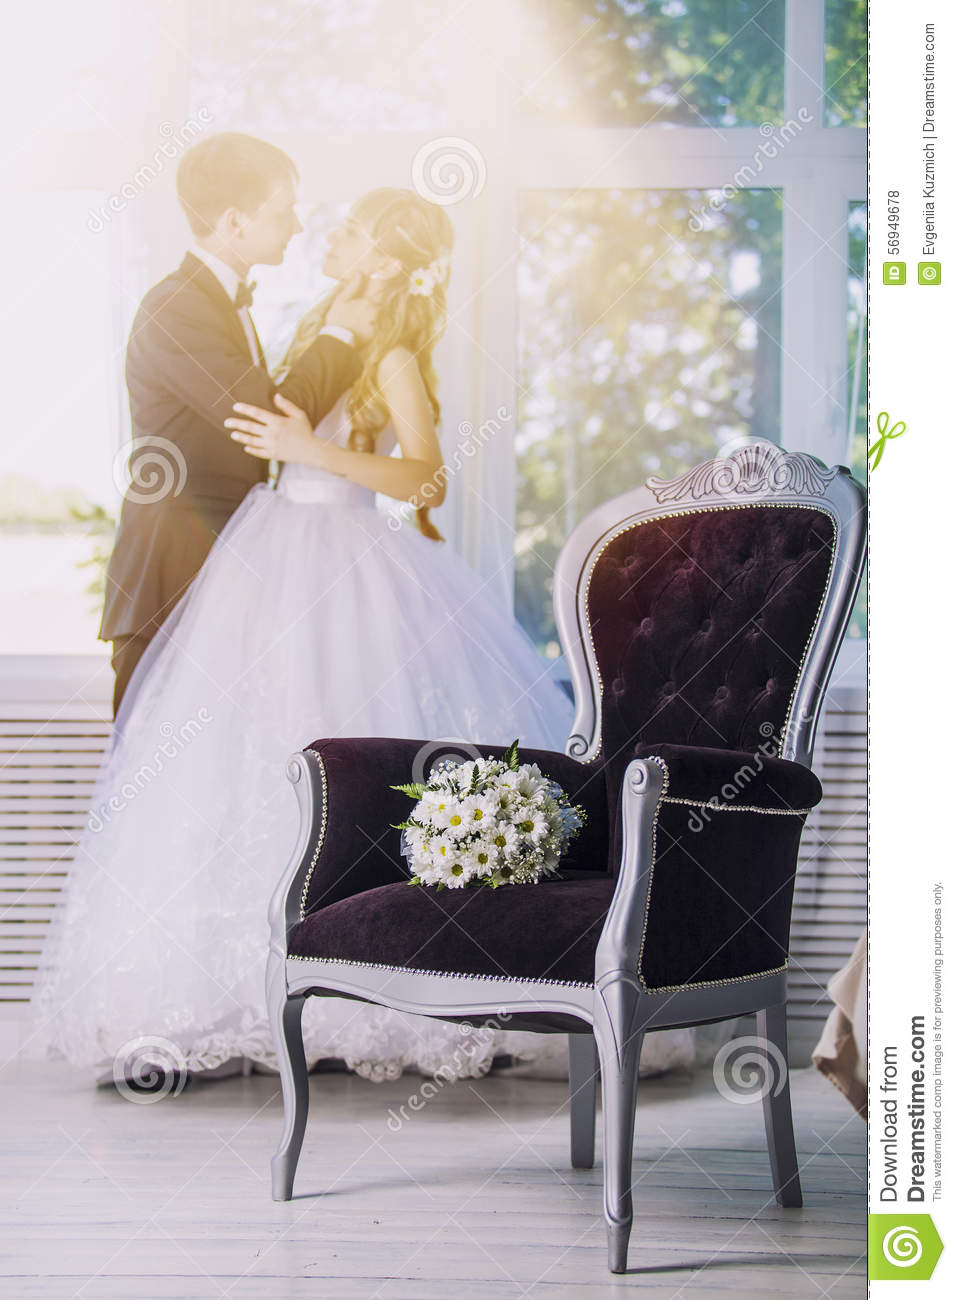 Bouquet Wedding Flowers Daisies In A Luxurious Chair In The Back